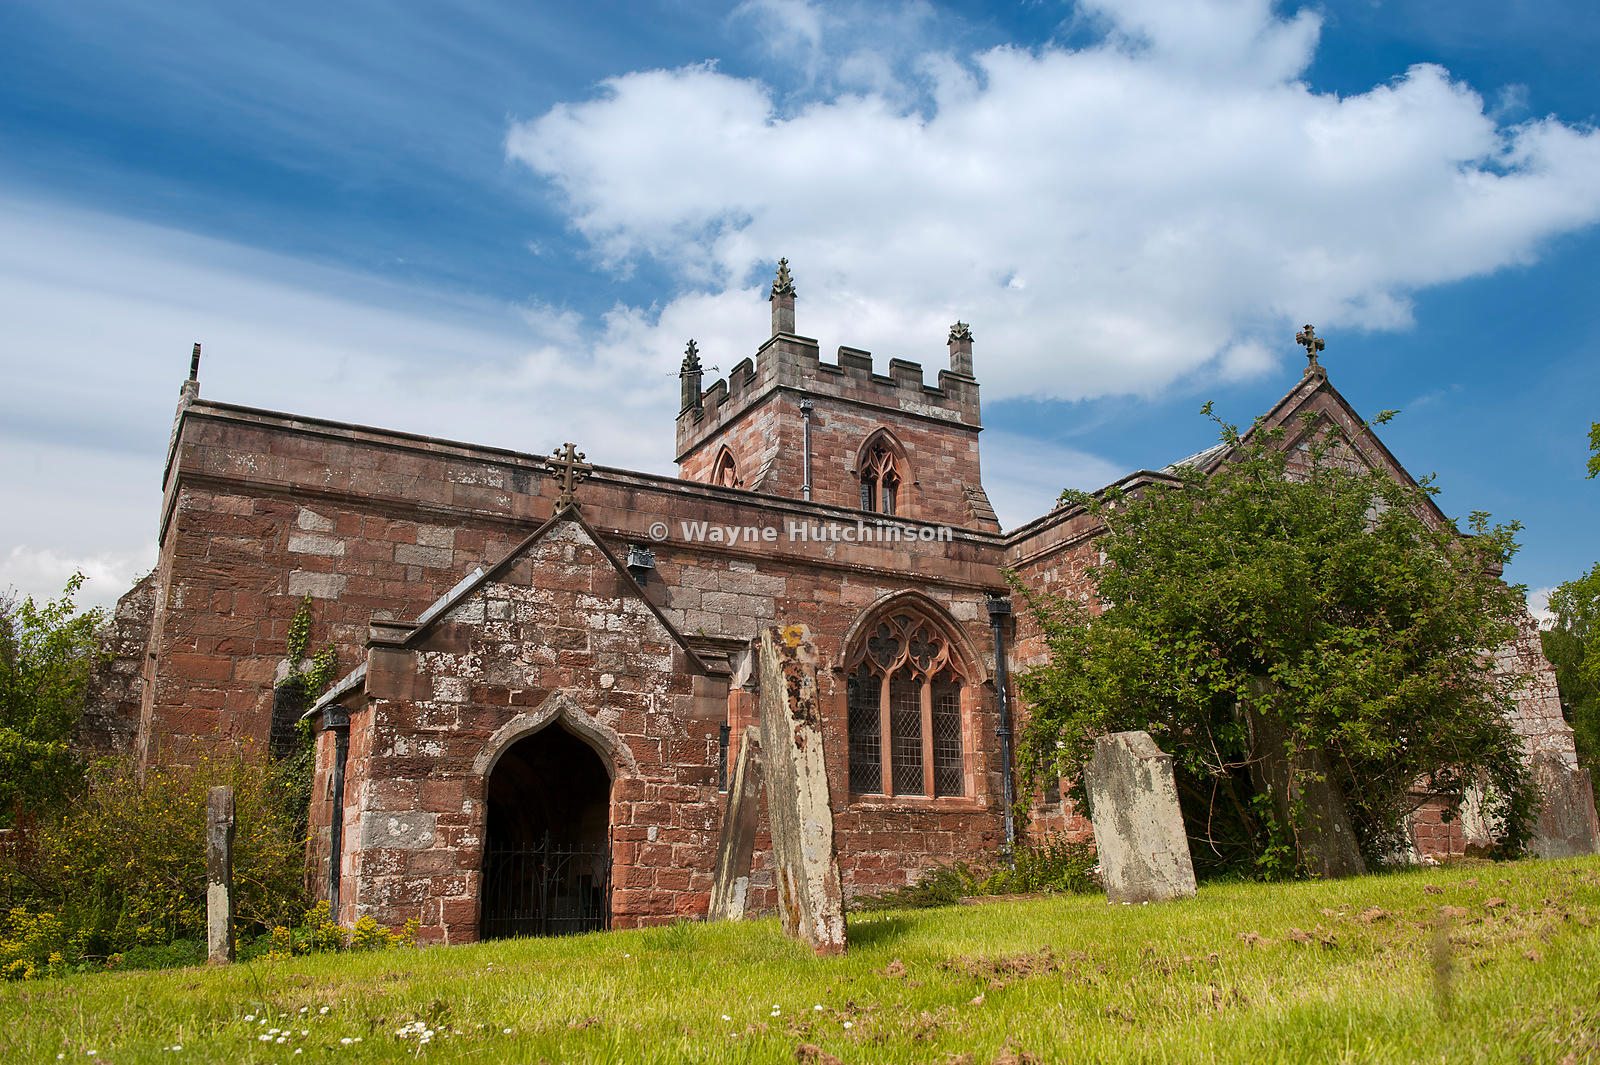 12c Church of Saint Michael in the Sands area of Appleby in Westmorland, UK.